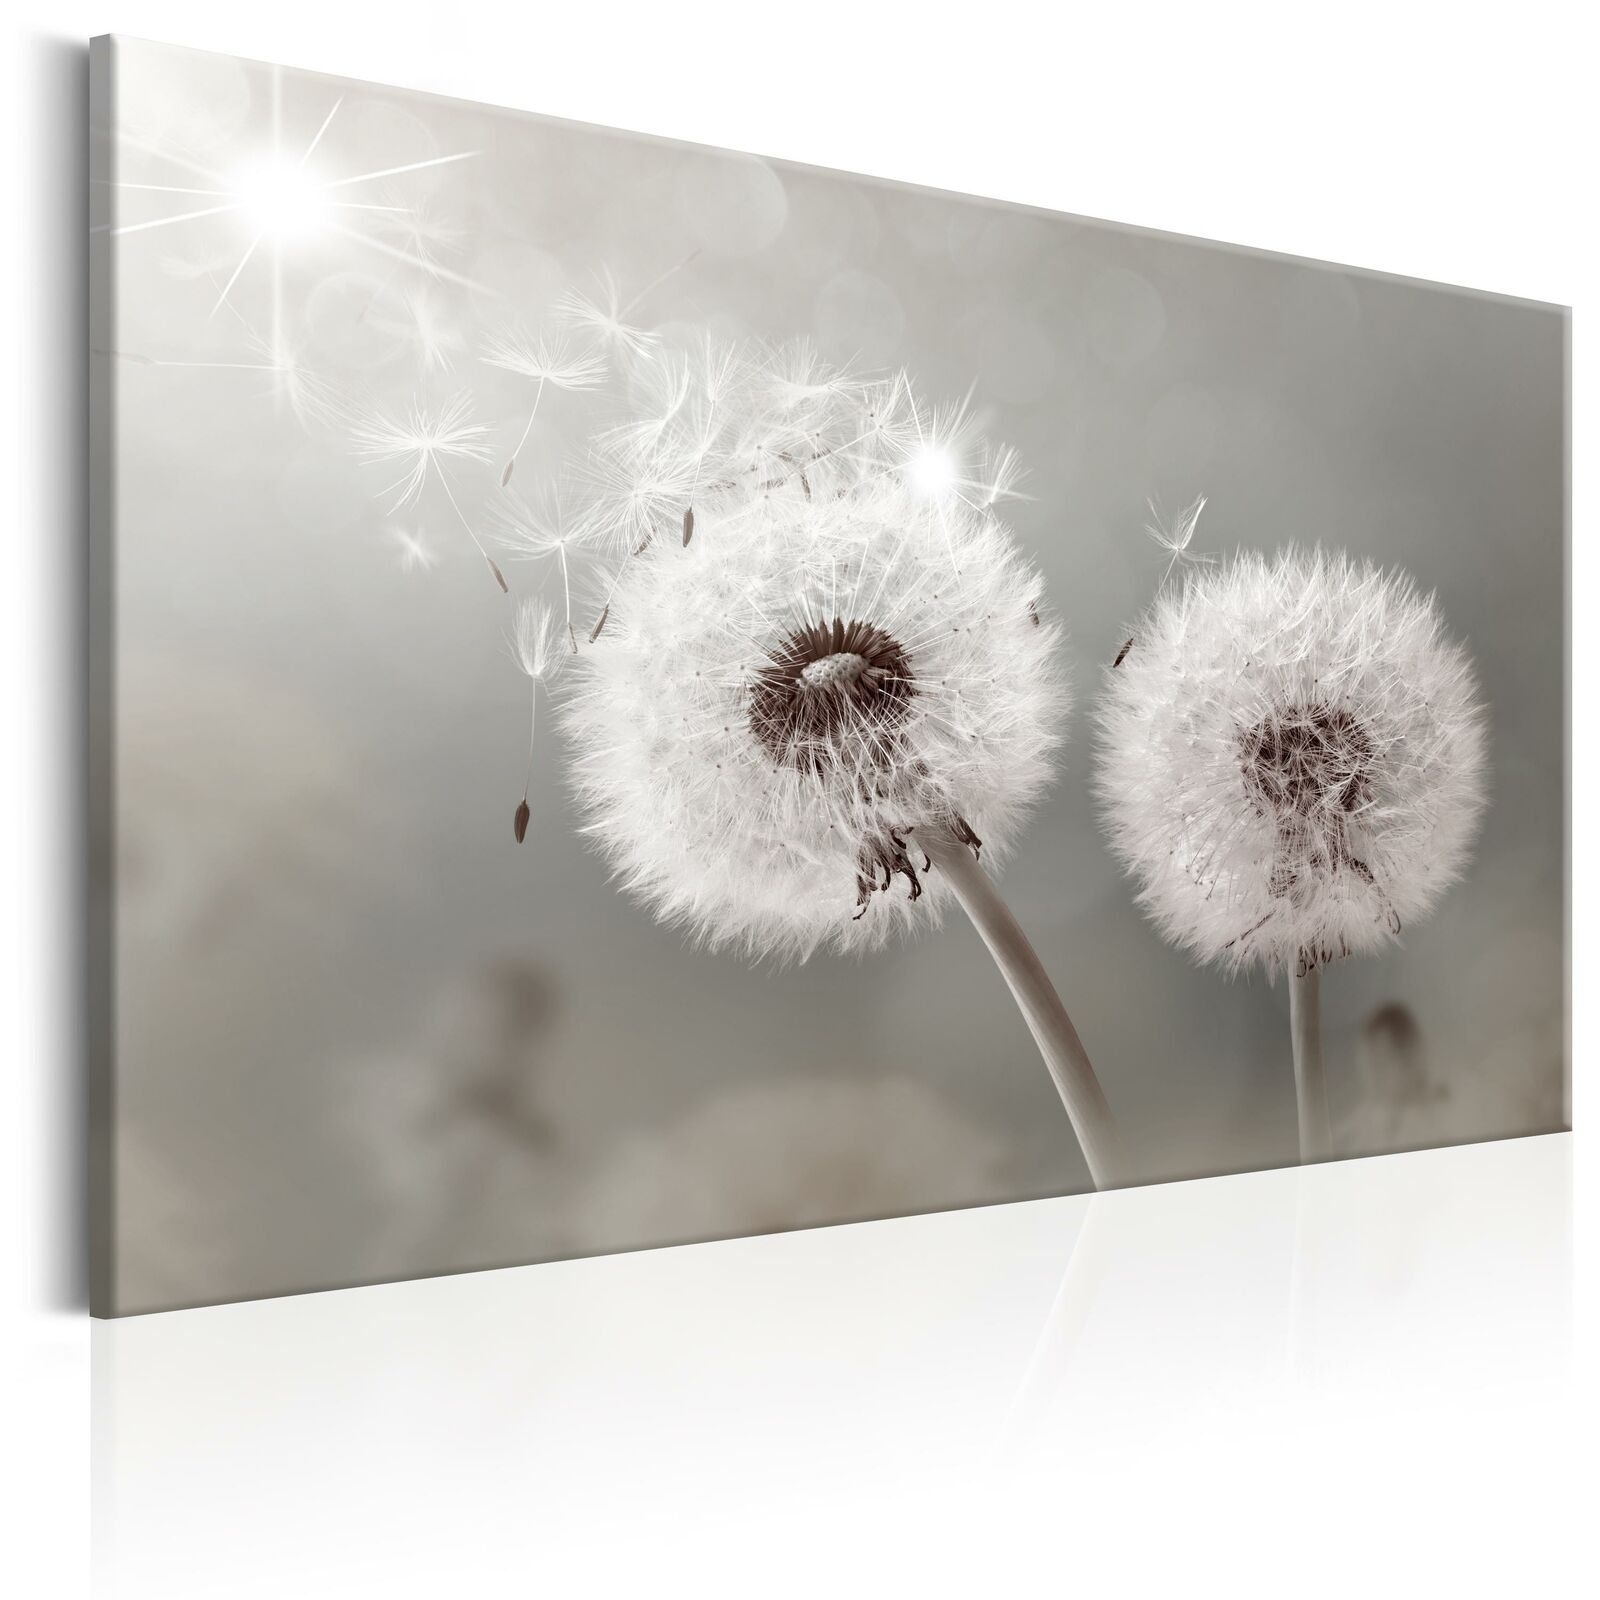 wandbilder pusteblume leinwand bilder xxl natur kunstdruck grau b c 0177 b a eur 22 99. Black Bedroom Furniture Sets. Home Design Ideas